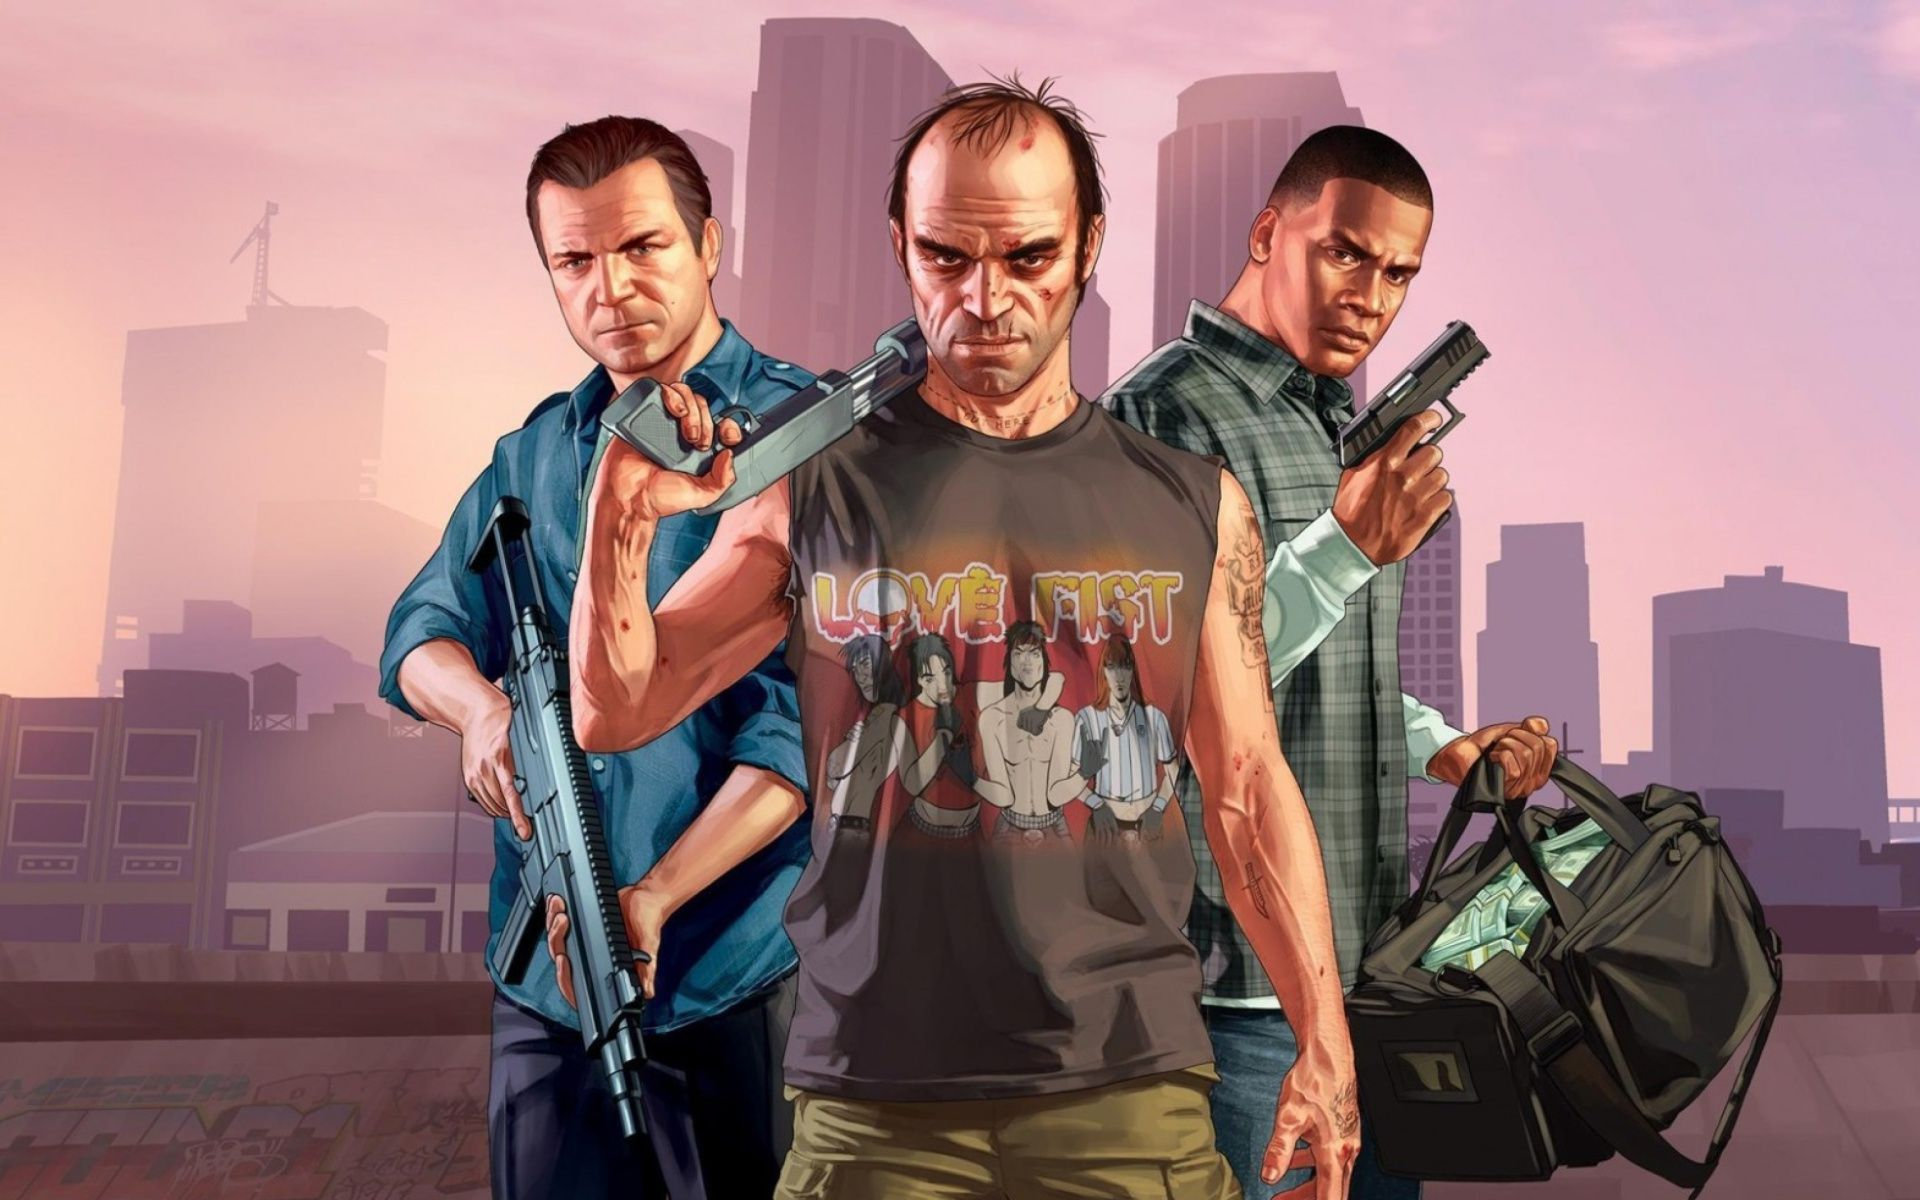 Gta 5 Wallpaper Hd 353979 - Grand Theft Auto 5 , HD Wallpaper & Backgrounds